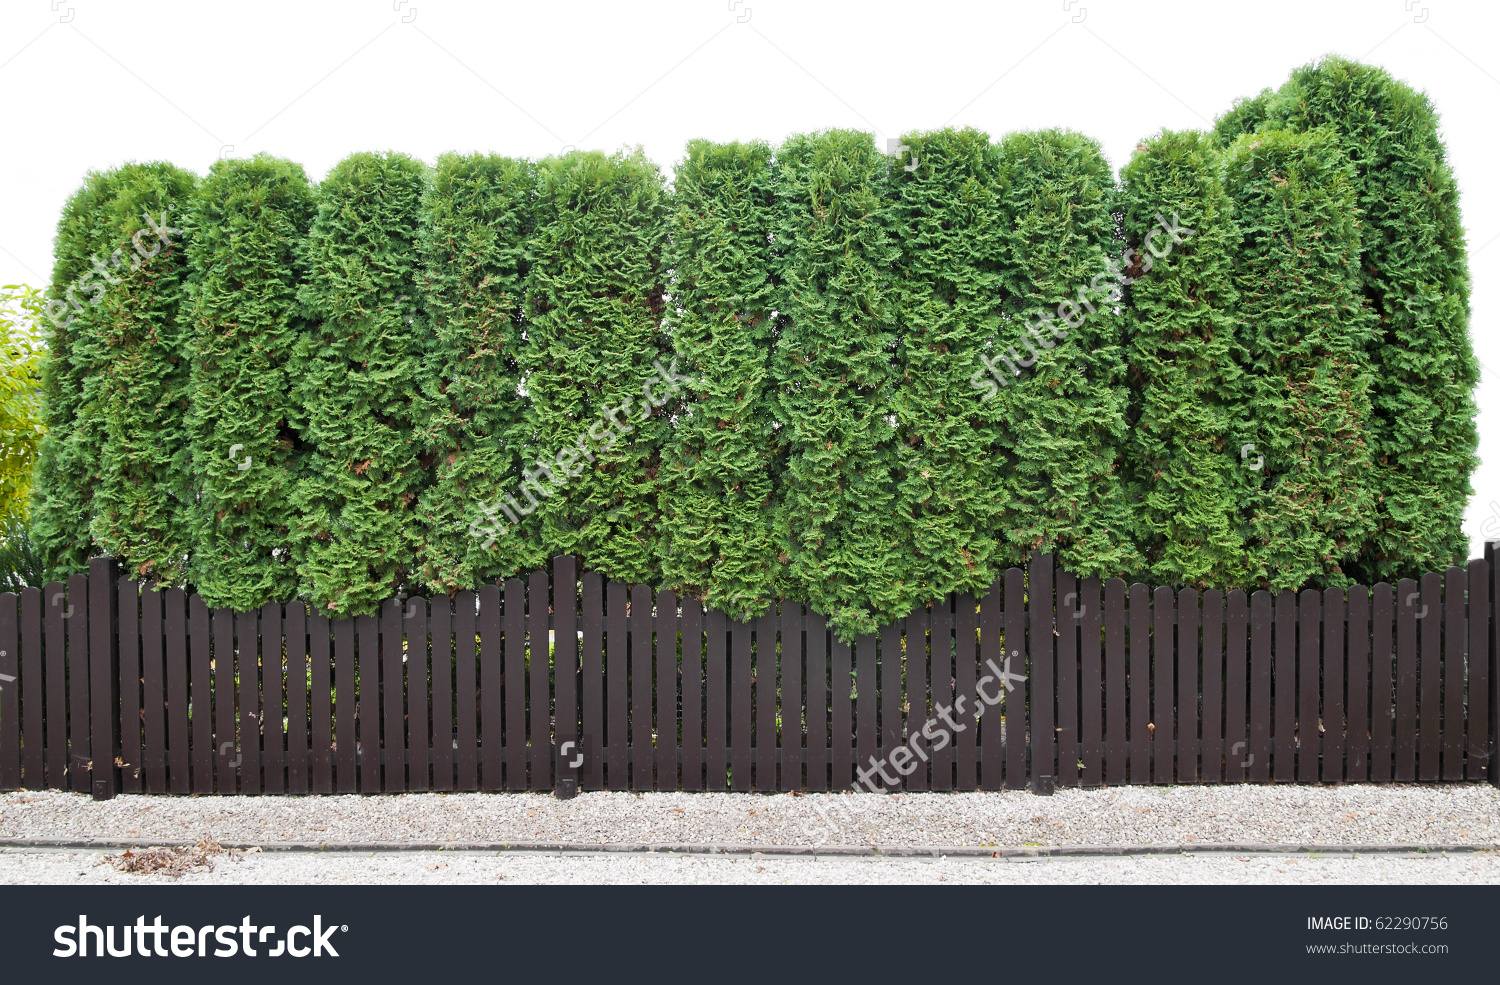 Fragment Rural Fence Hedge Evergreen Plants Stock Photo 62290756.